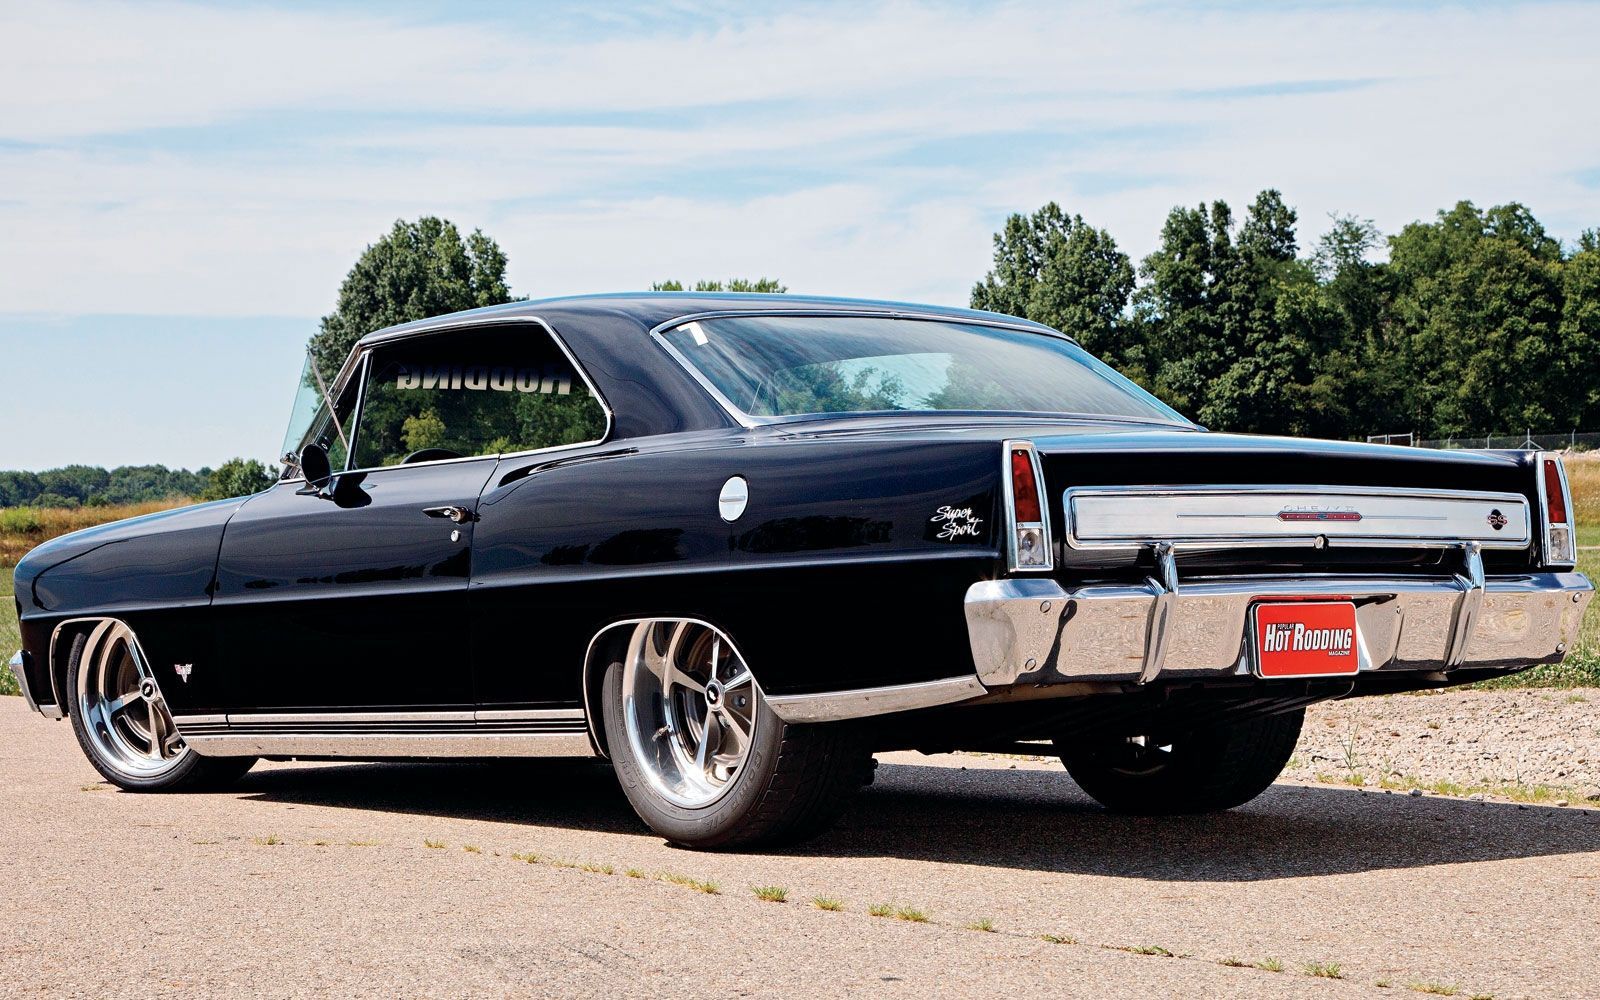 This gorgeous 67 chevy nova built by schwartz performance is powered by a 650hp ls7 mated to a tremec 6 speed manual transmission it rides on a